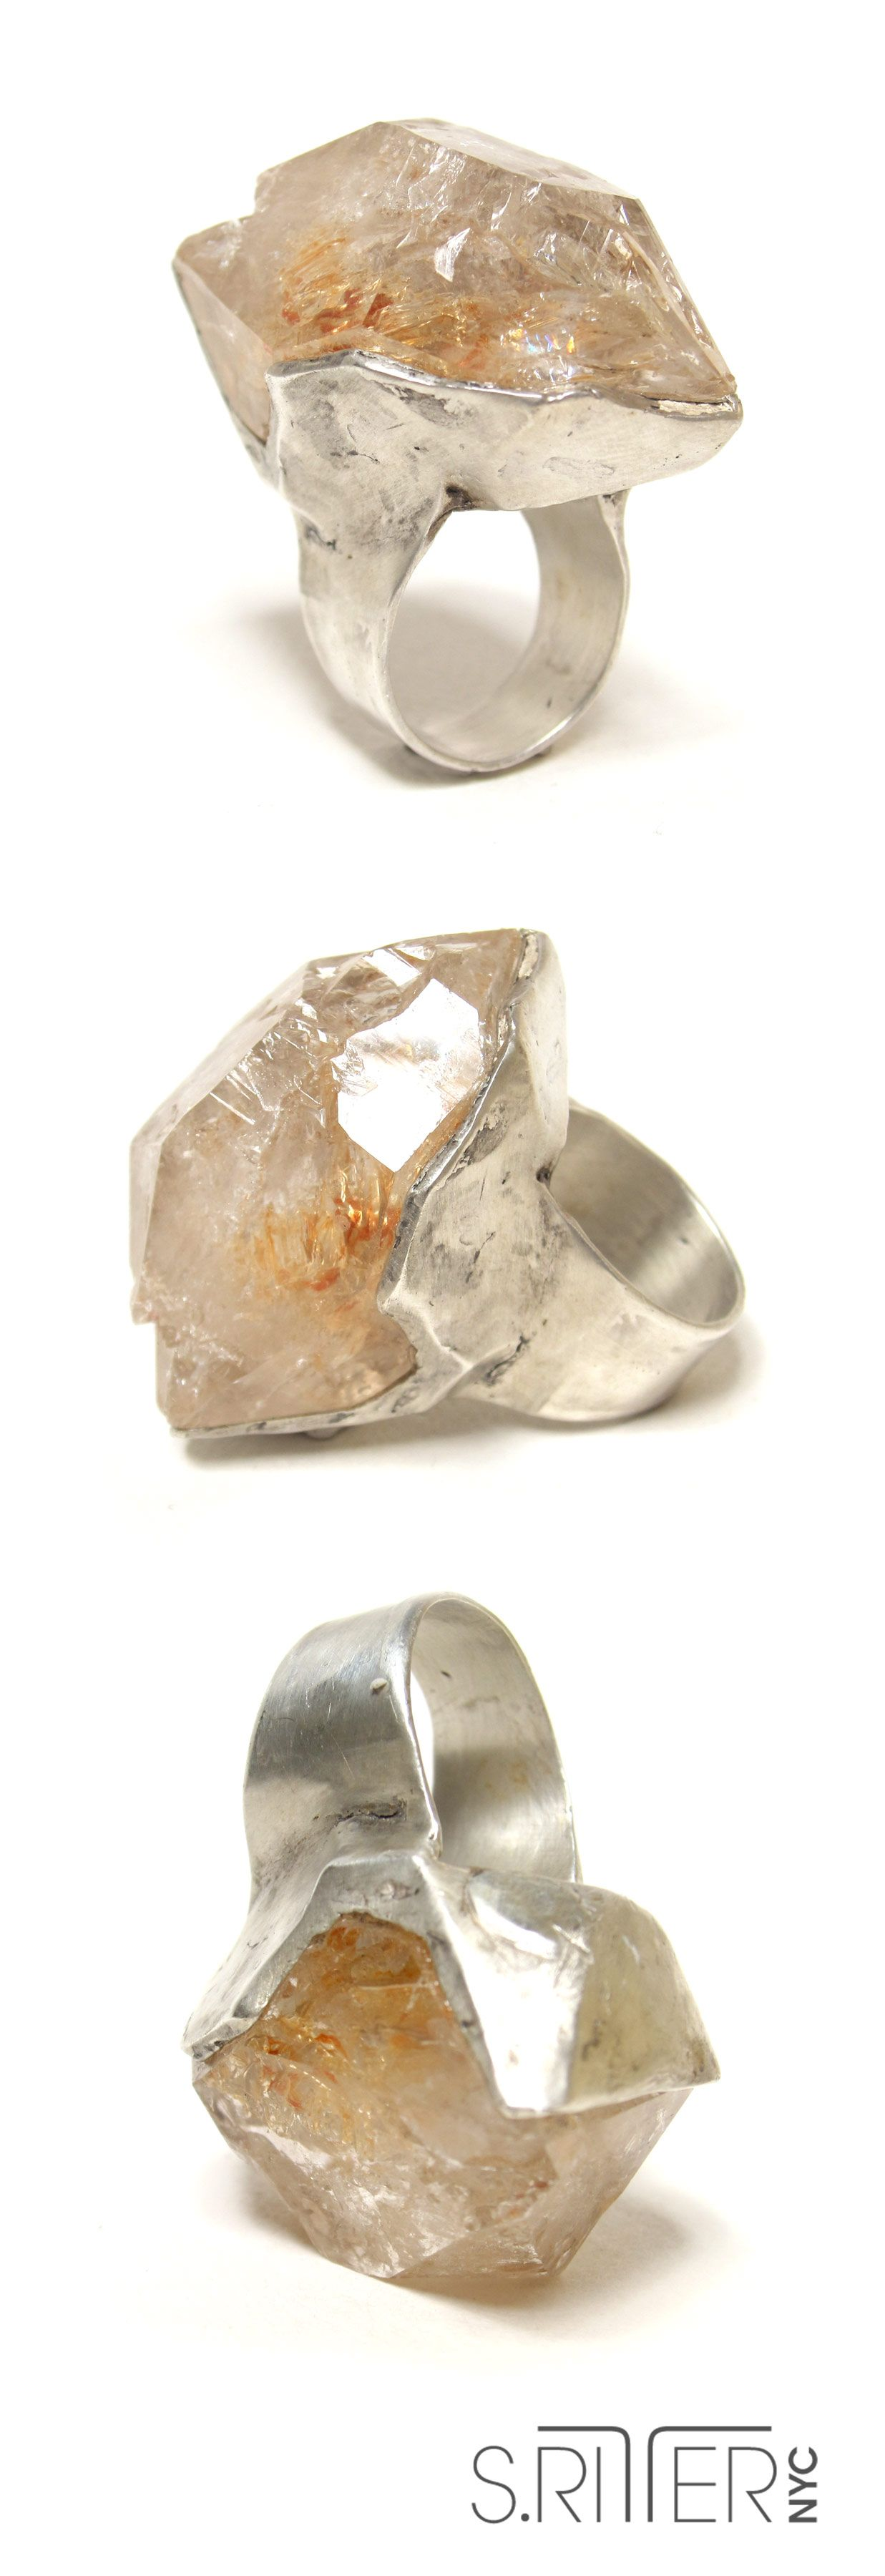 Is quartz considered a natural stone - Ice For Your Hand Raw Fenster Quartz Set In Sterling Silver Raw Natural Stone